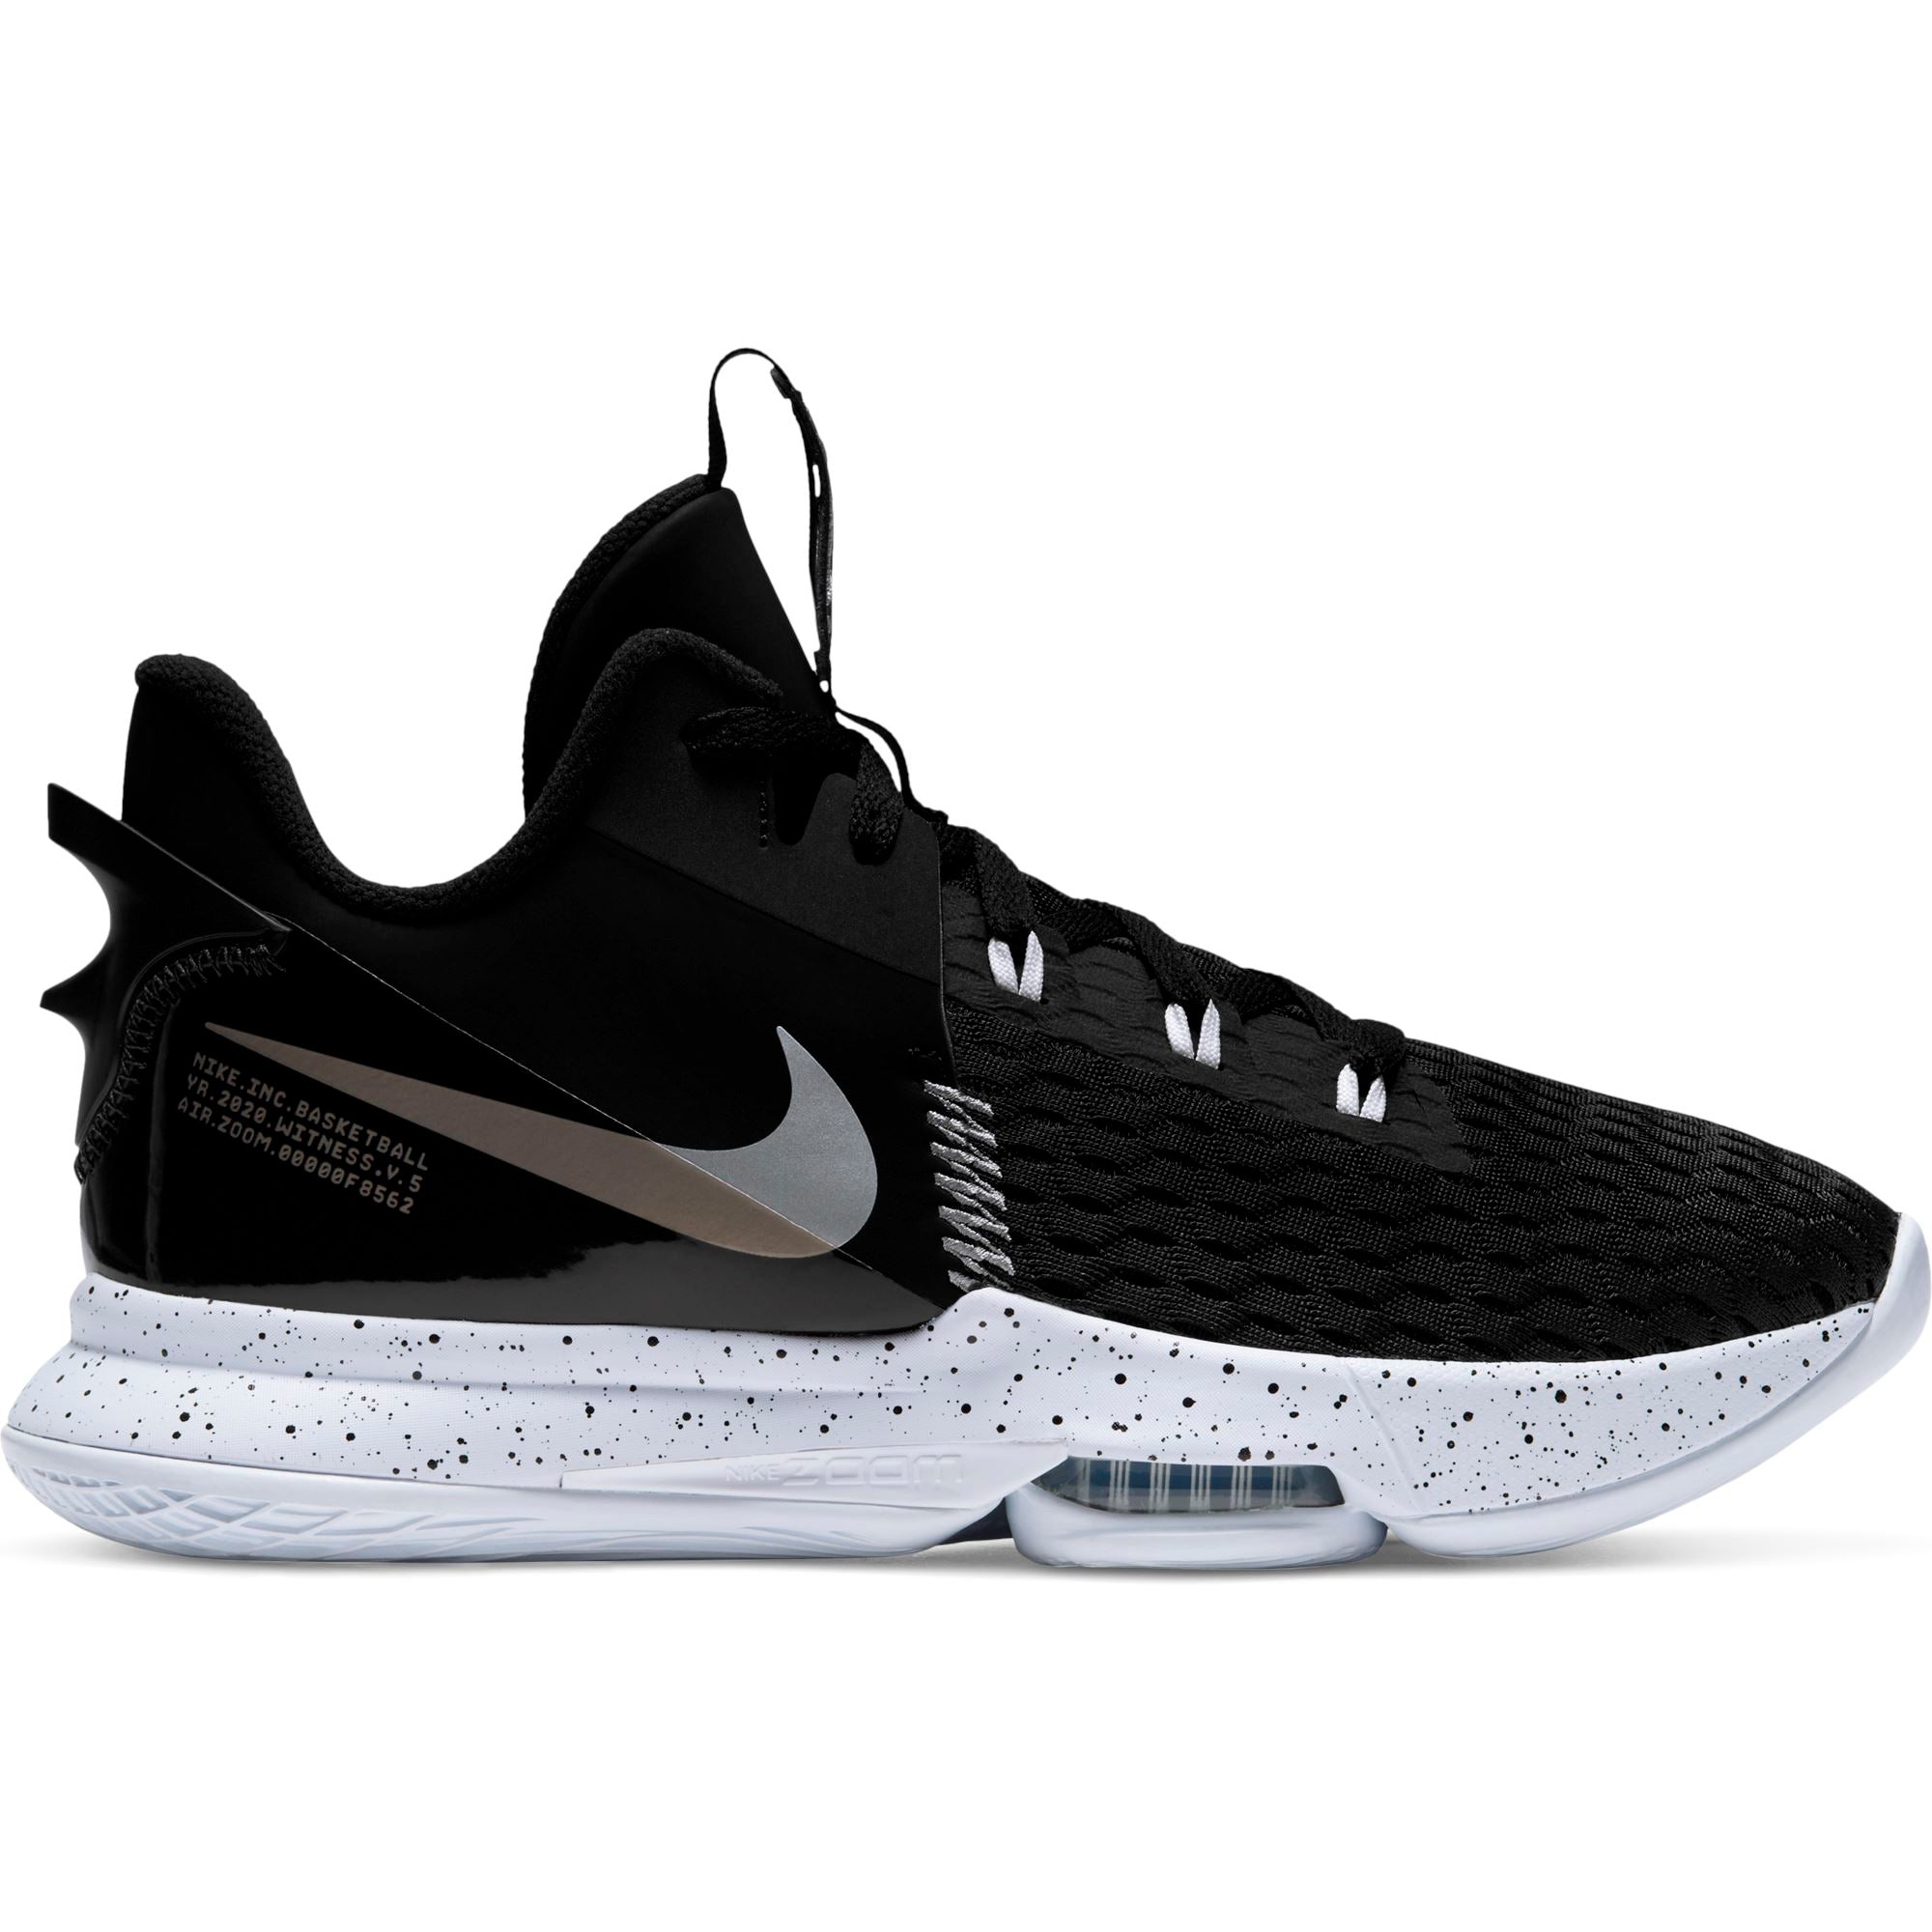 Nike Lebron Witness 5 - Black/Metallic Silver-White SP-Footwear-Mens Nike